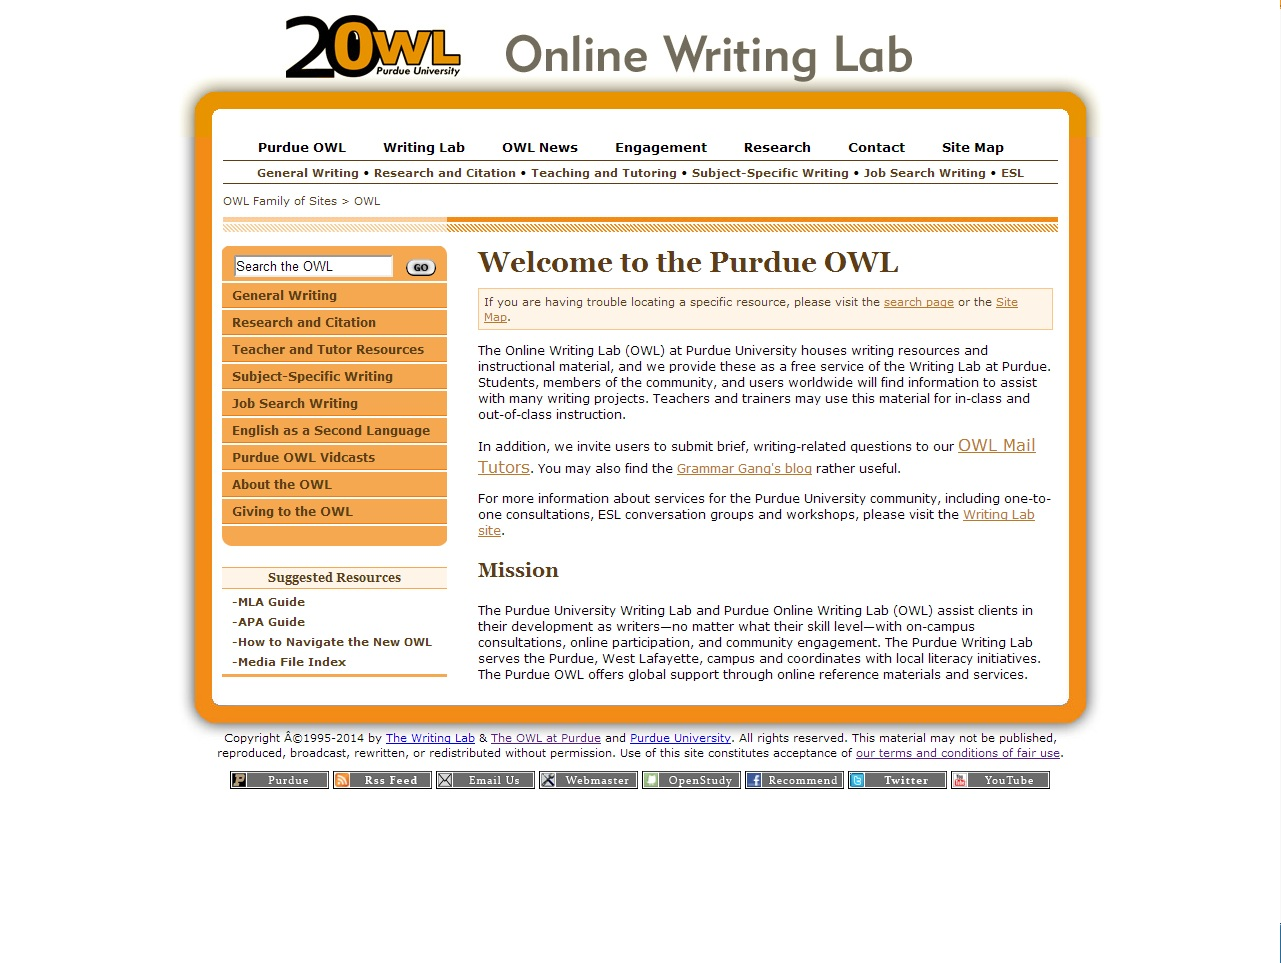 Screenshot of Purdue Online Writing Lab Page